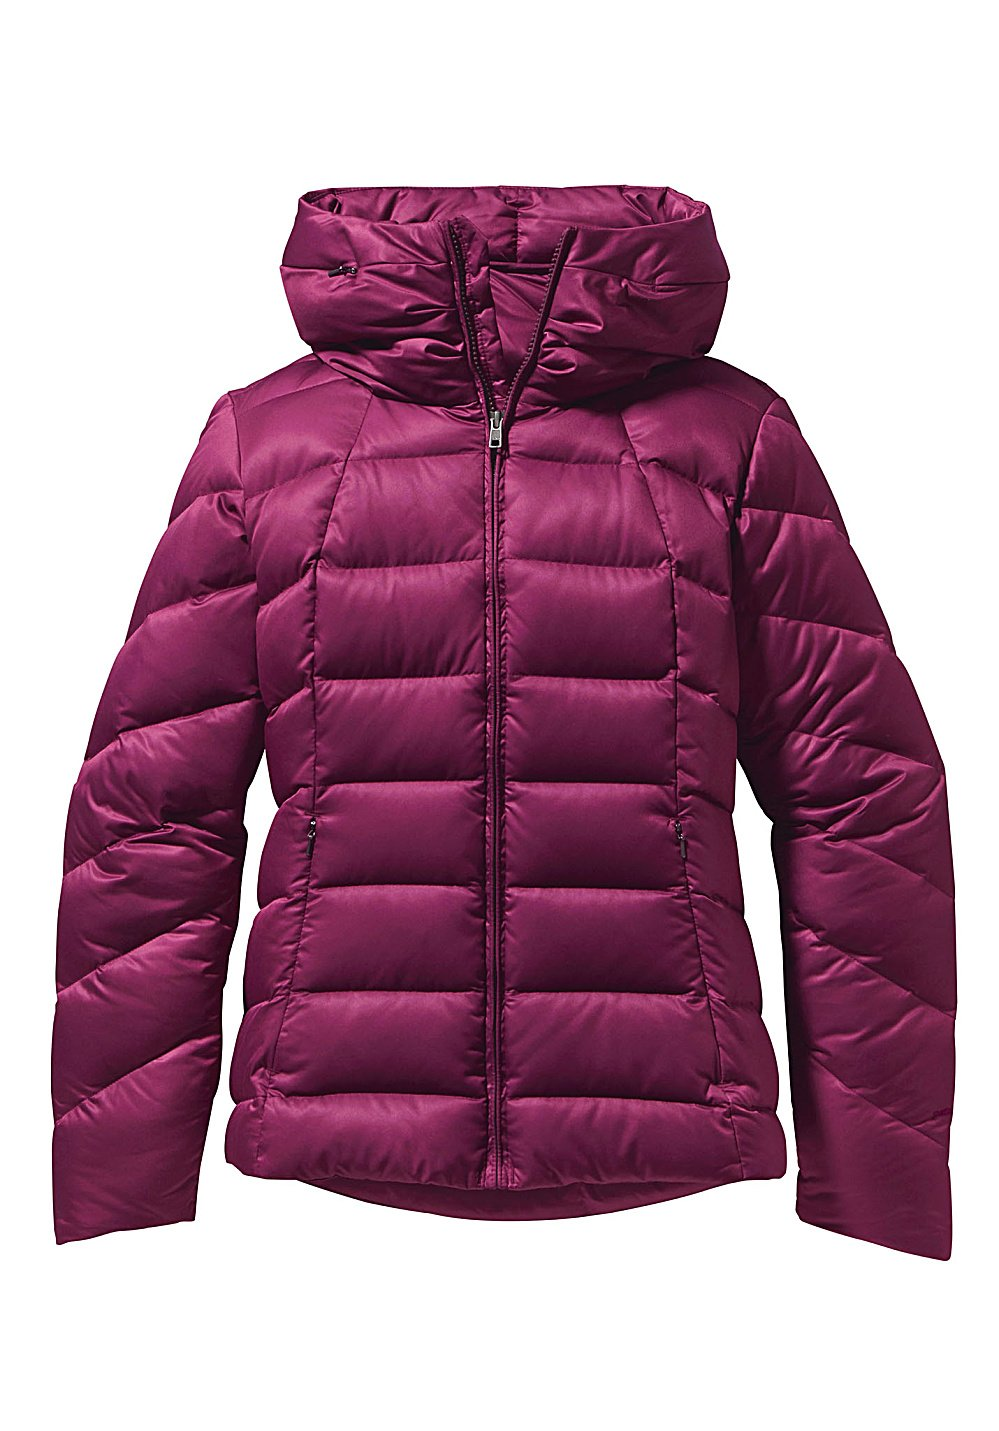 Patagonia Downtown Jacket Women - Daunenjacke